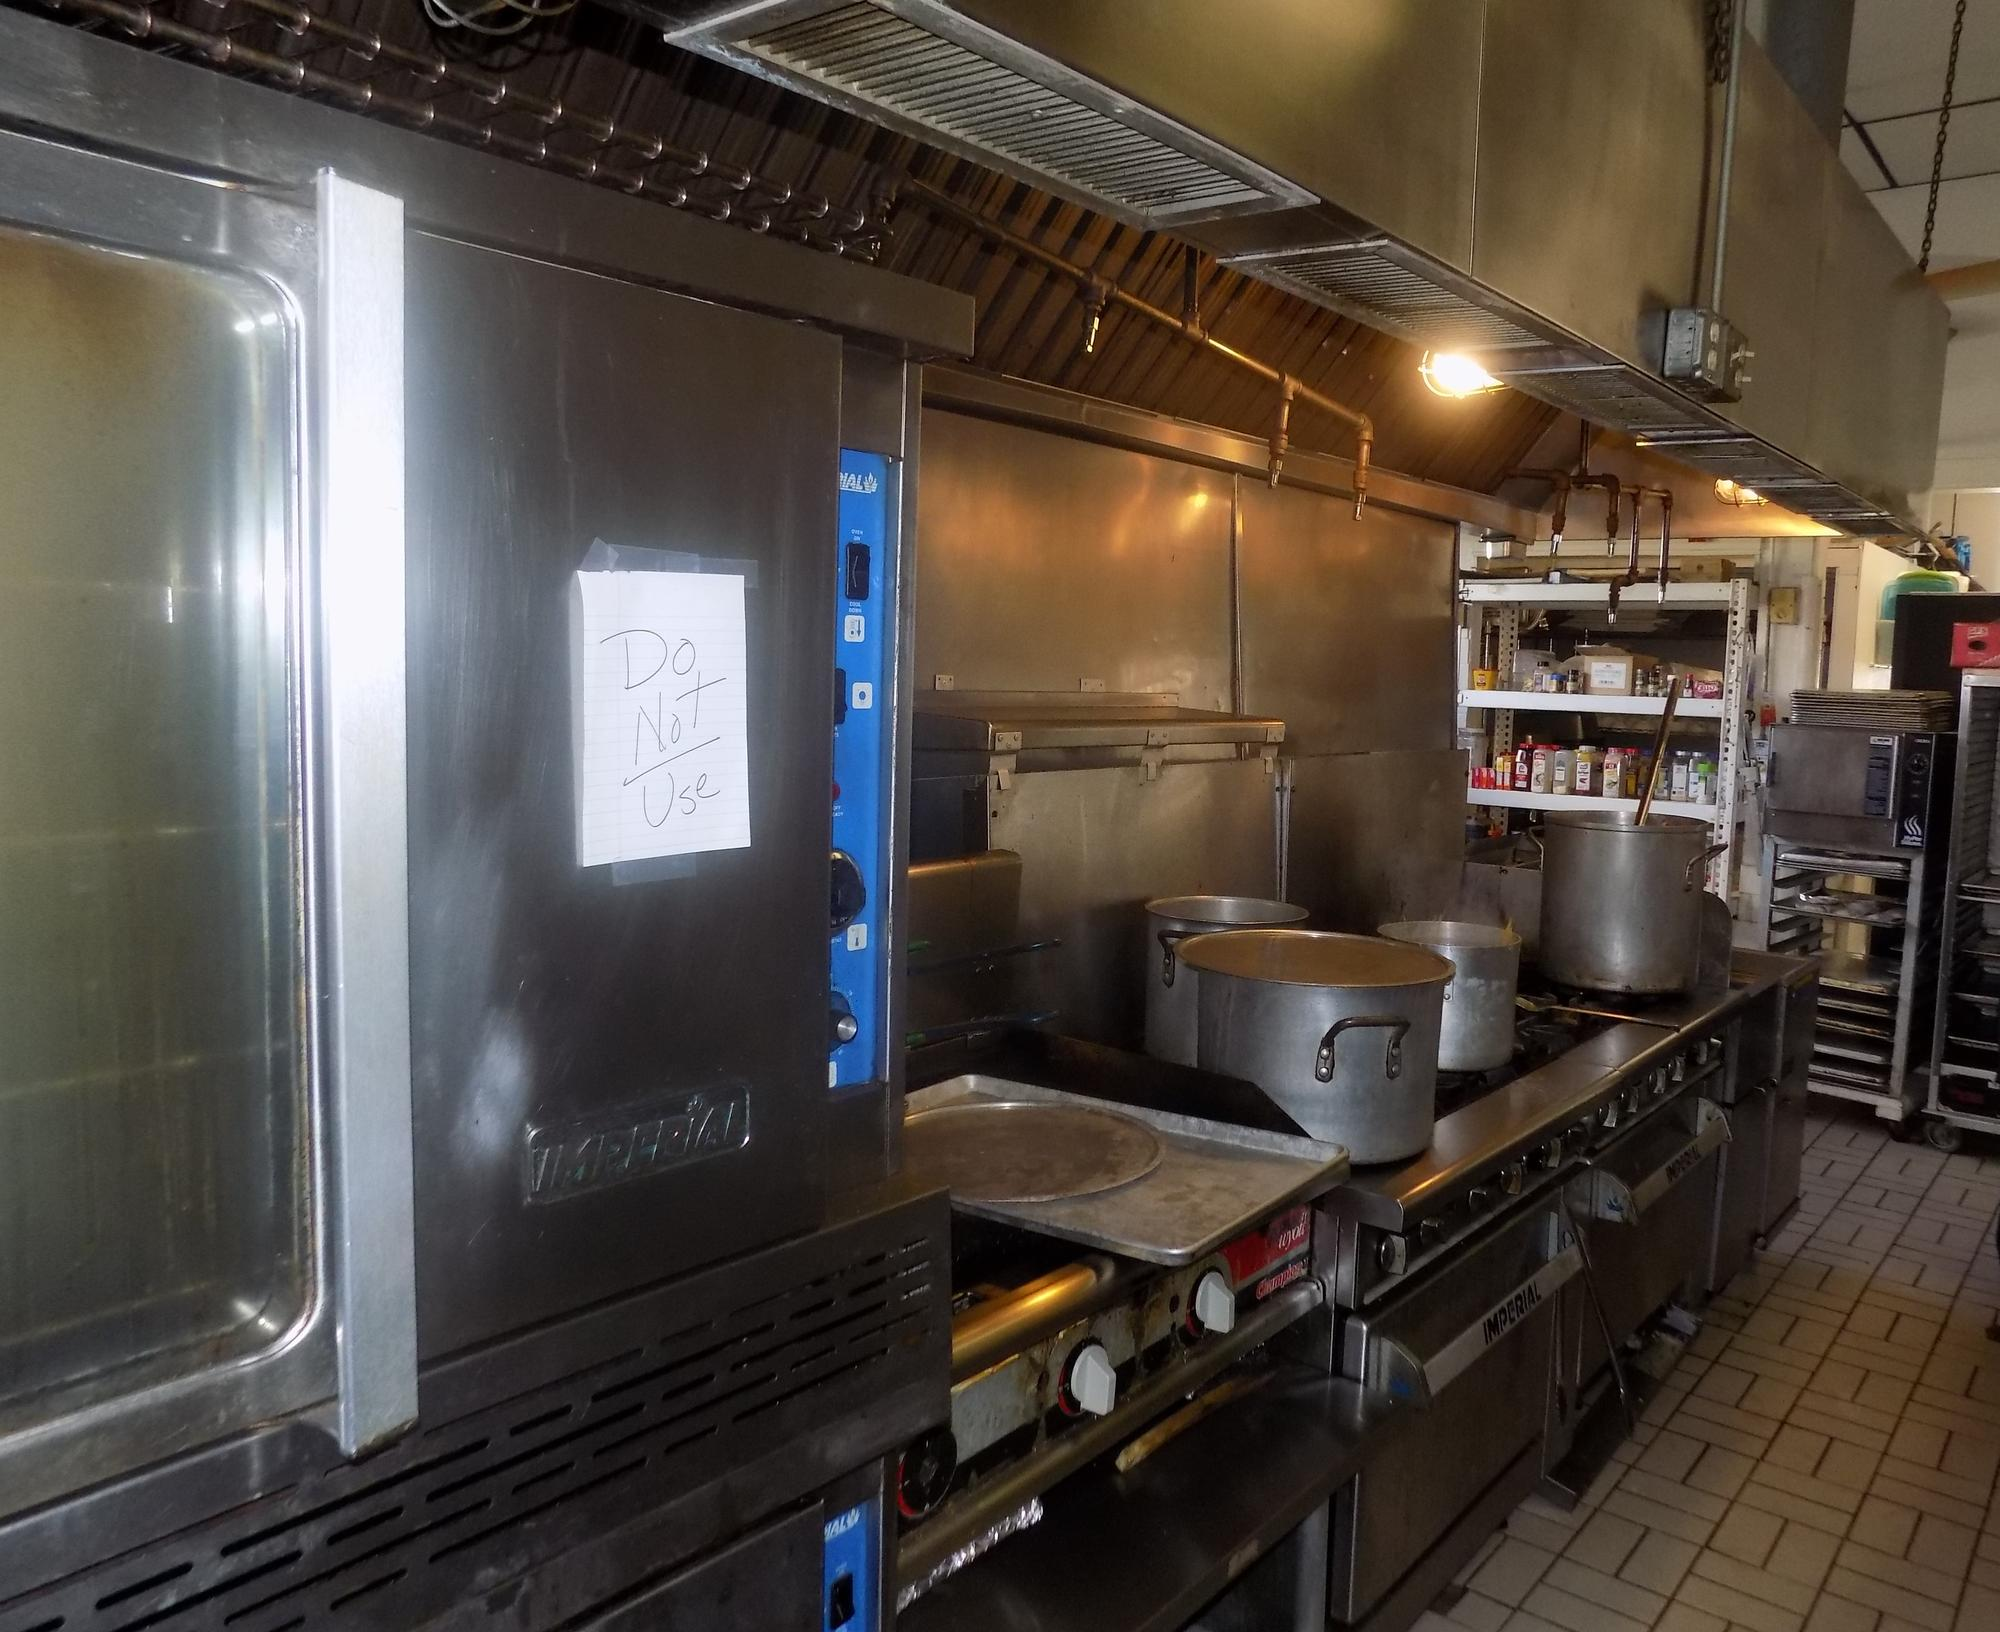 Commercial kitchen inspection.